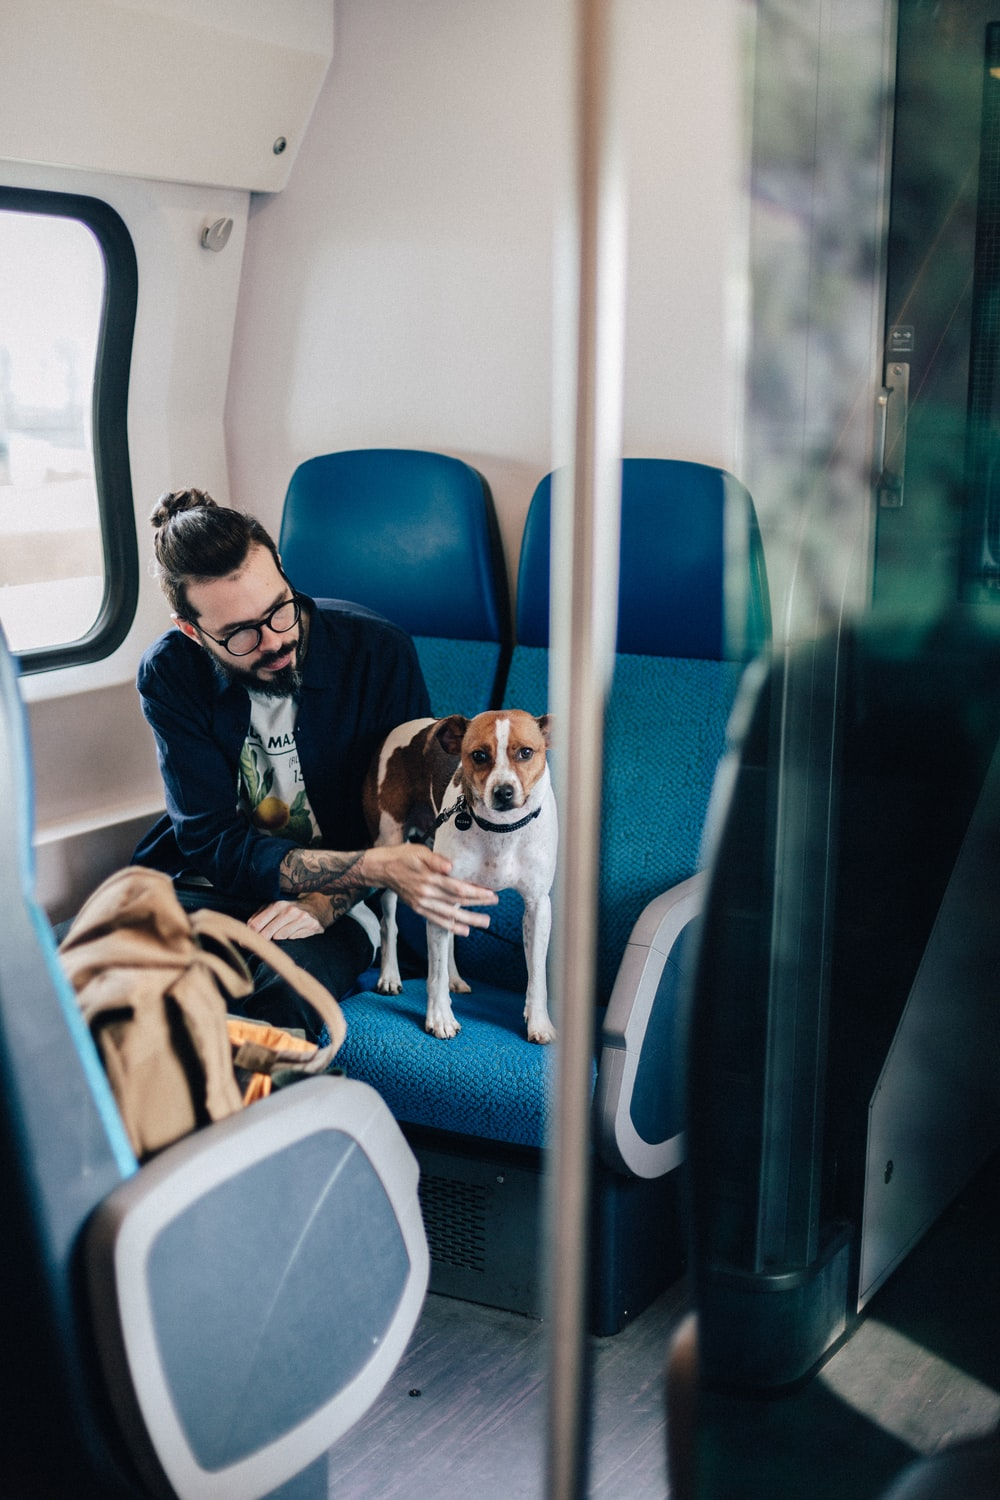 man sitting in train beside dog